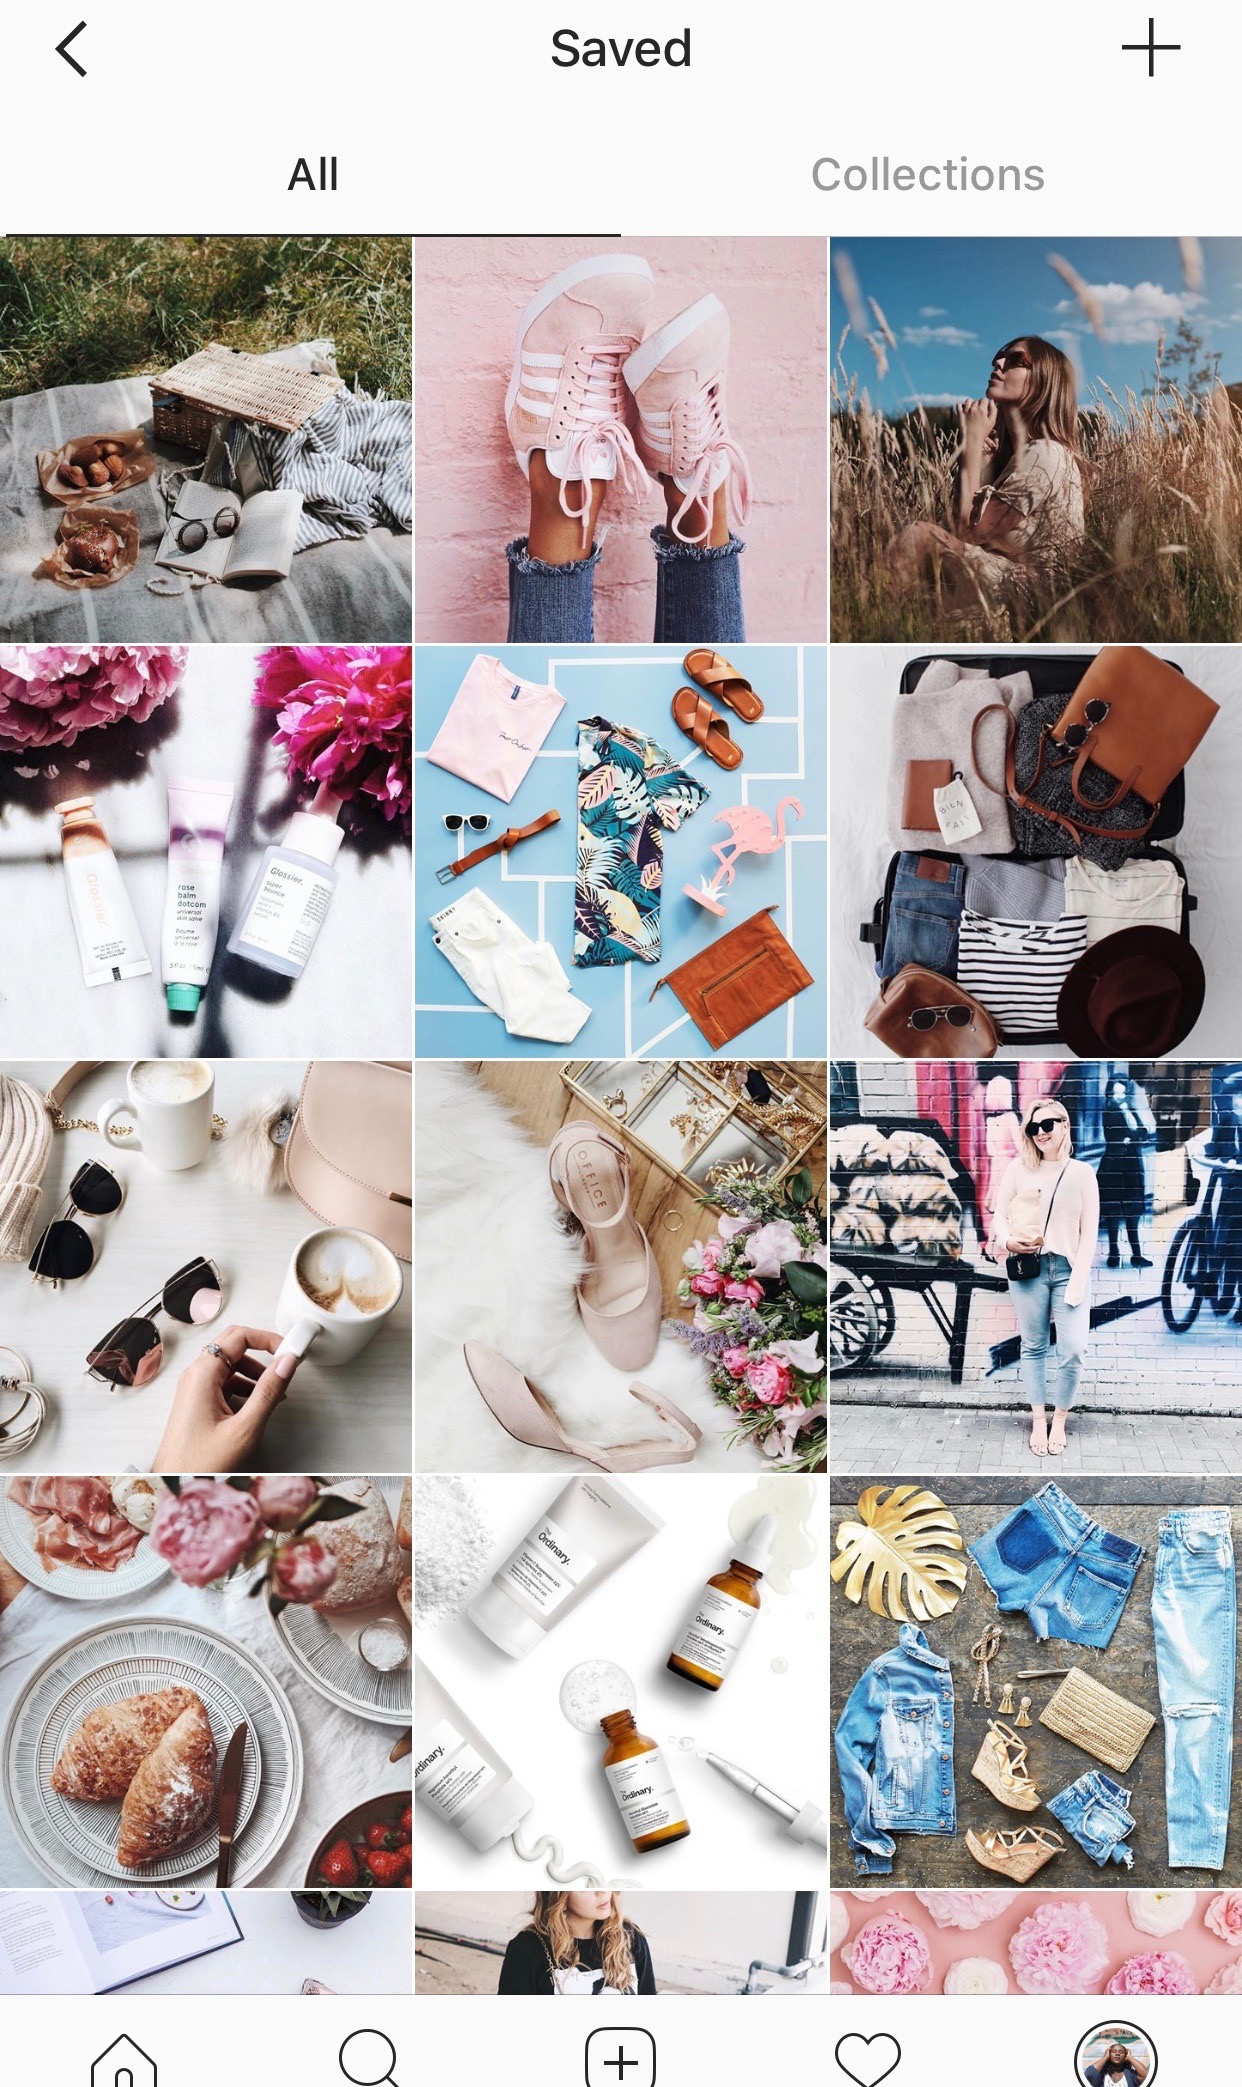 How to bloggers use instagram collections